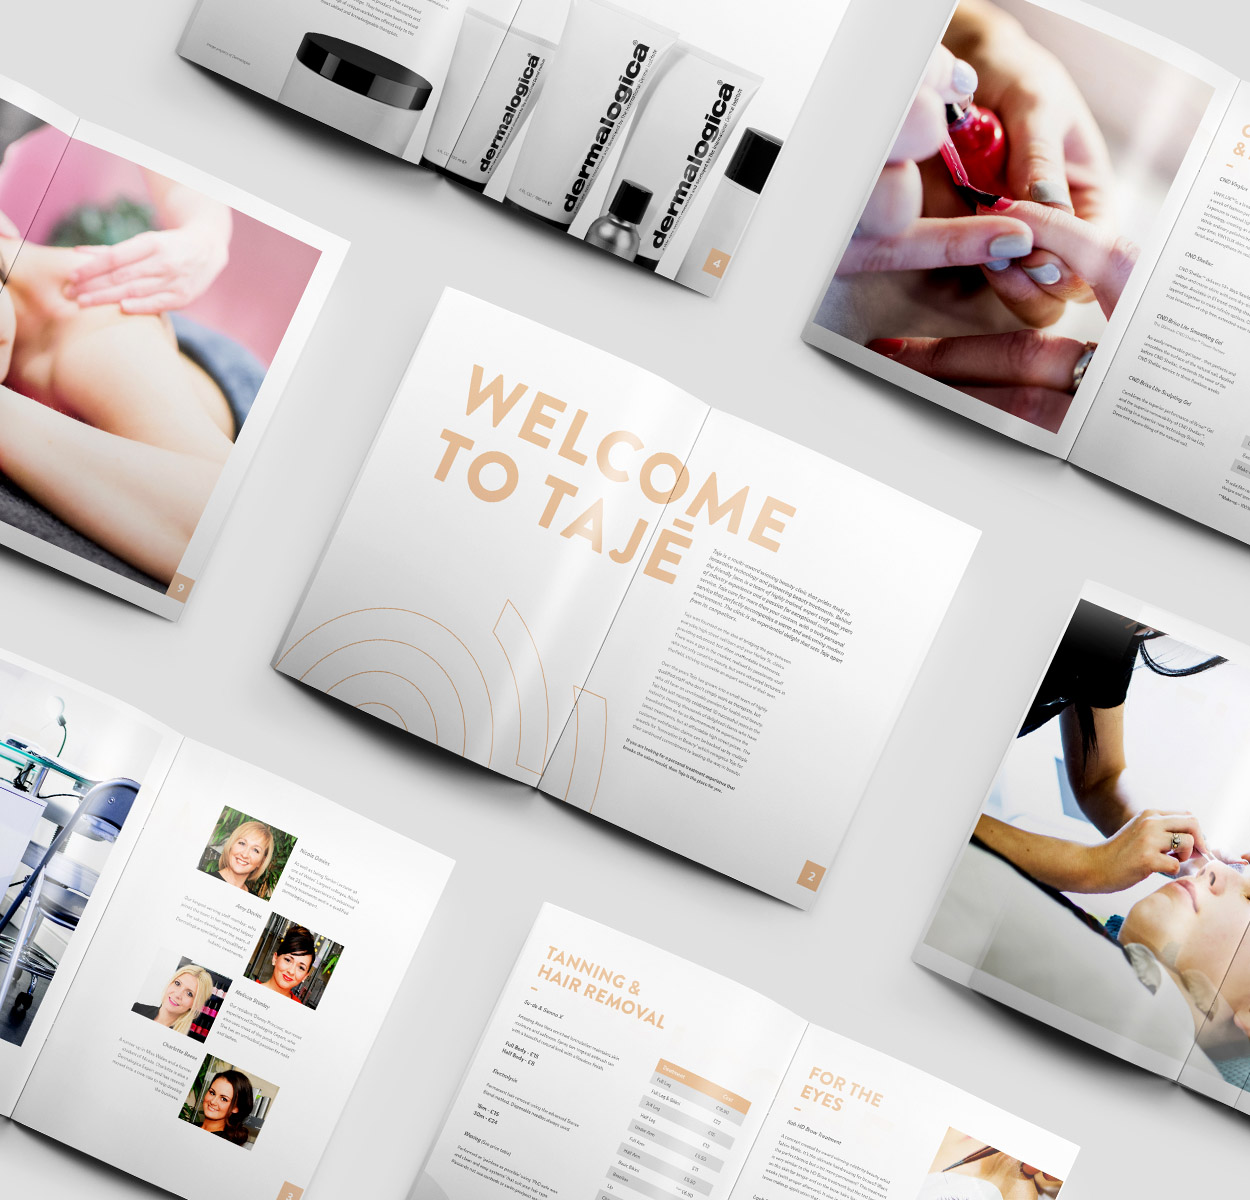 beauty salon price guide design